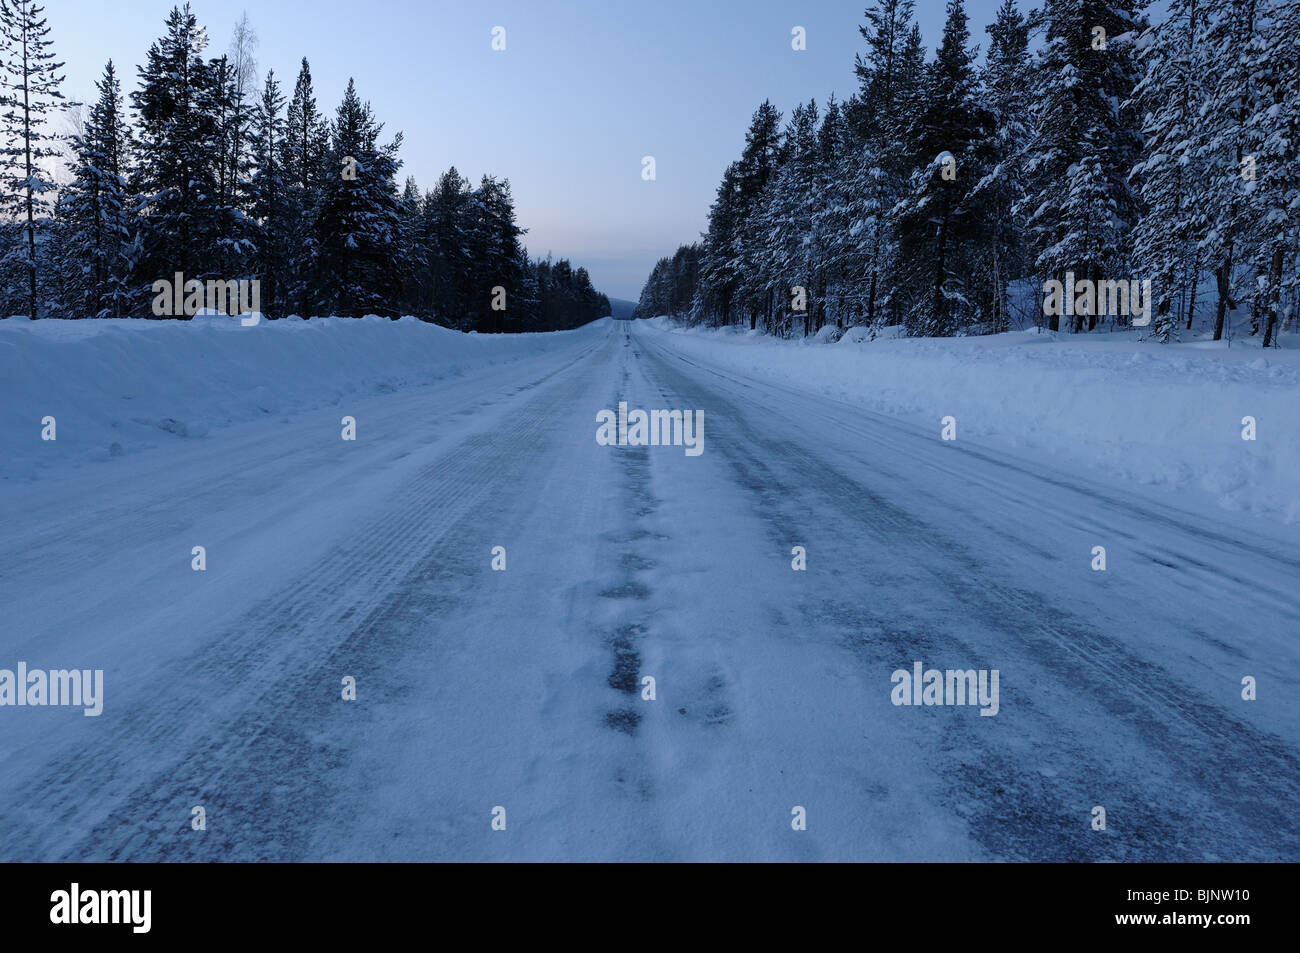 On the way from Gallivare to Kiruna, alone somewhere in Lapland. - Stock Image